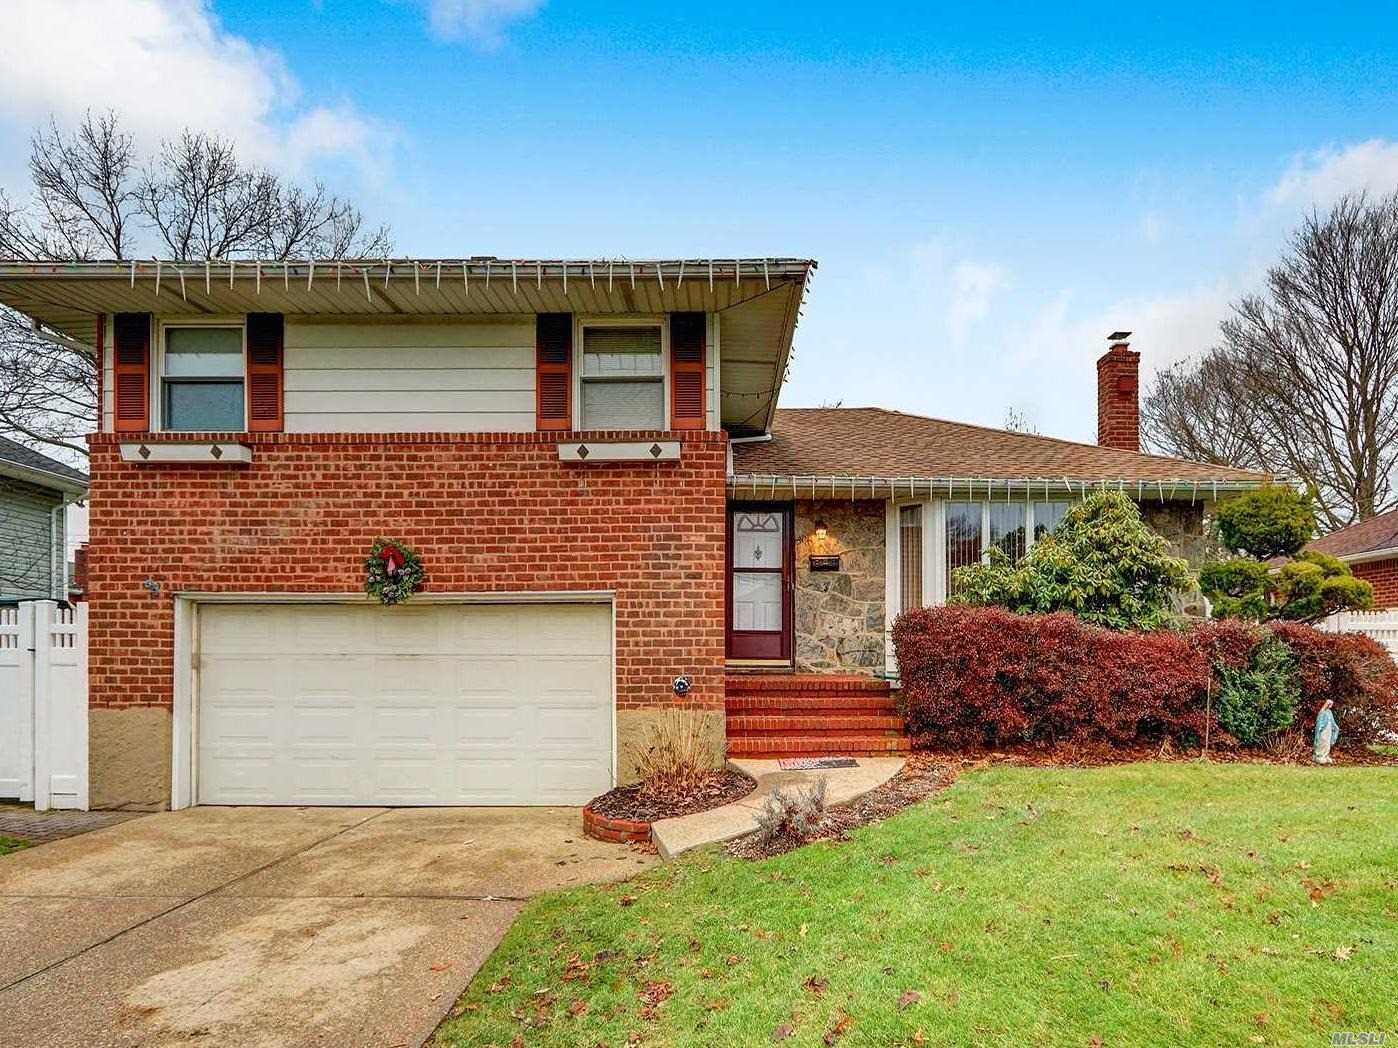 This Lovely Split Level Home Features All Large Rooms, and is Located in Plainedge SD #18!  Eat In Oak Kitchen with Granite Counters with Sliders to Deck and Yard. Andersen Windows, 2 Car Garage, Updated Roof and HW Heater, Gas Heating. **Tax Grievance Has Been Filed For 2019/2020 for 12.5%! (letter attached)** This is a Great Home...Close to RR and Shopping..